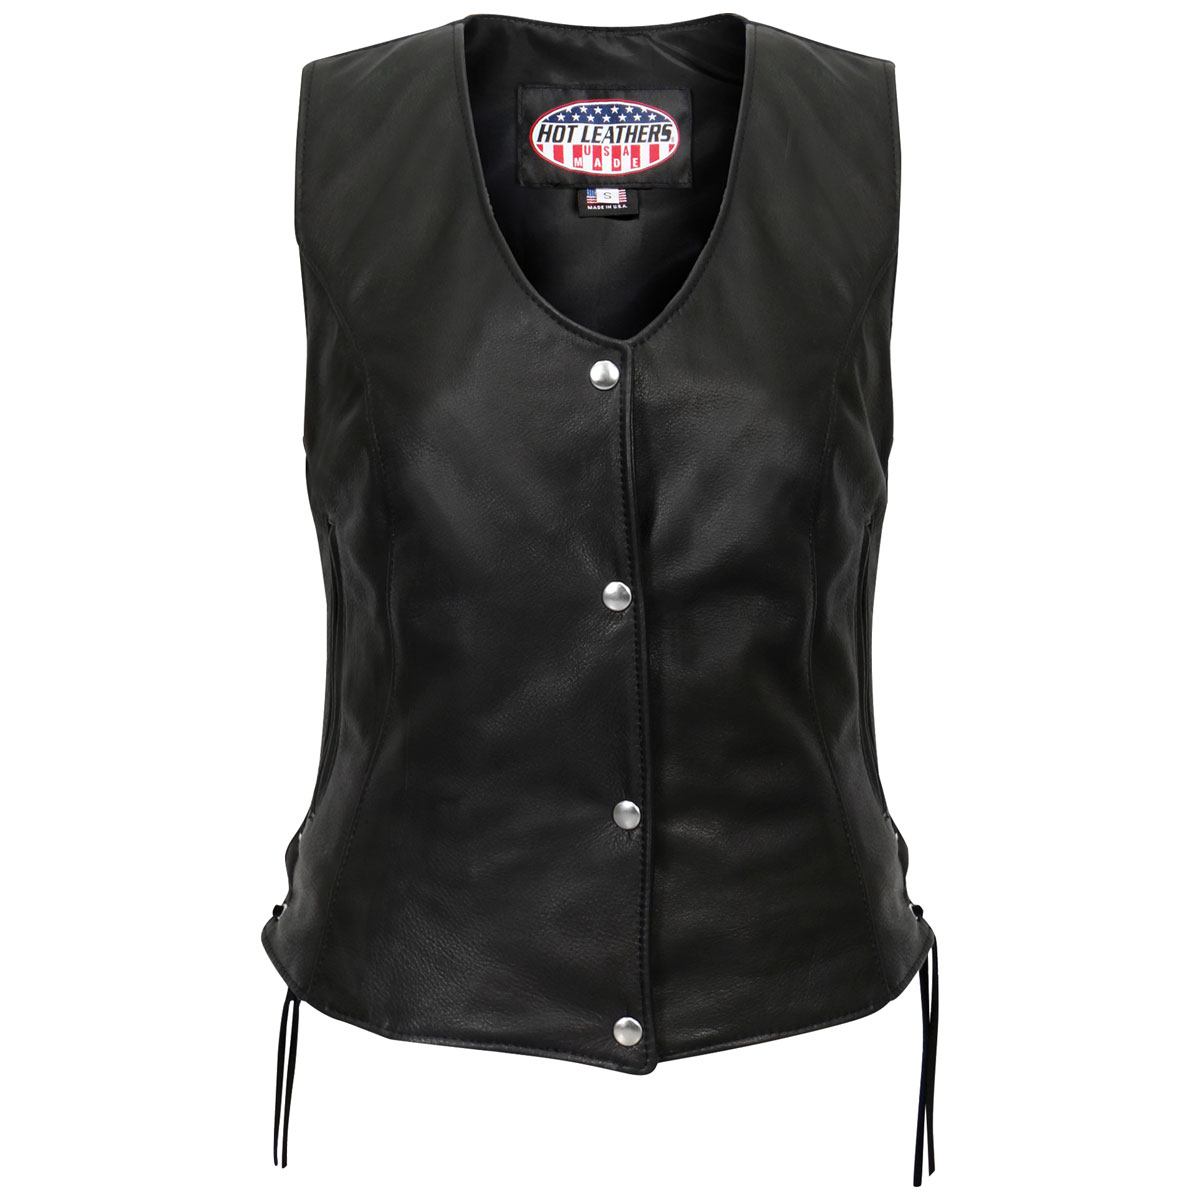 Hot Leathers Women's USA Made Side Lace Black Leather Vest